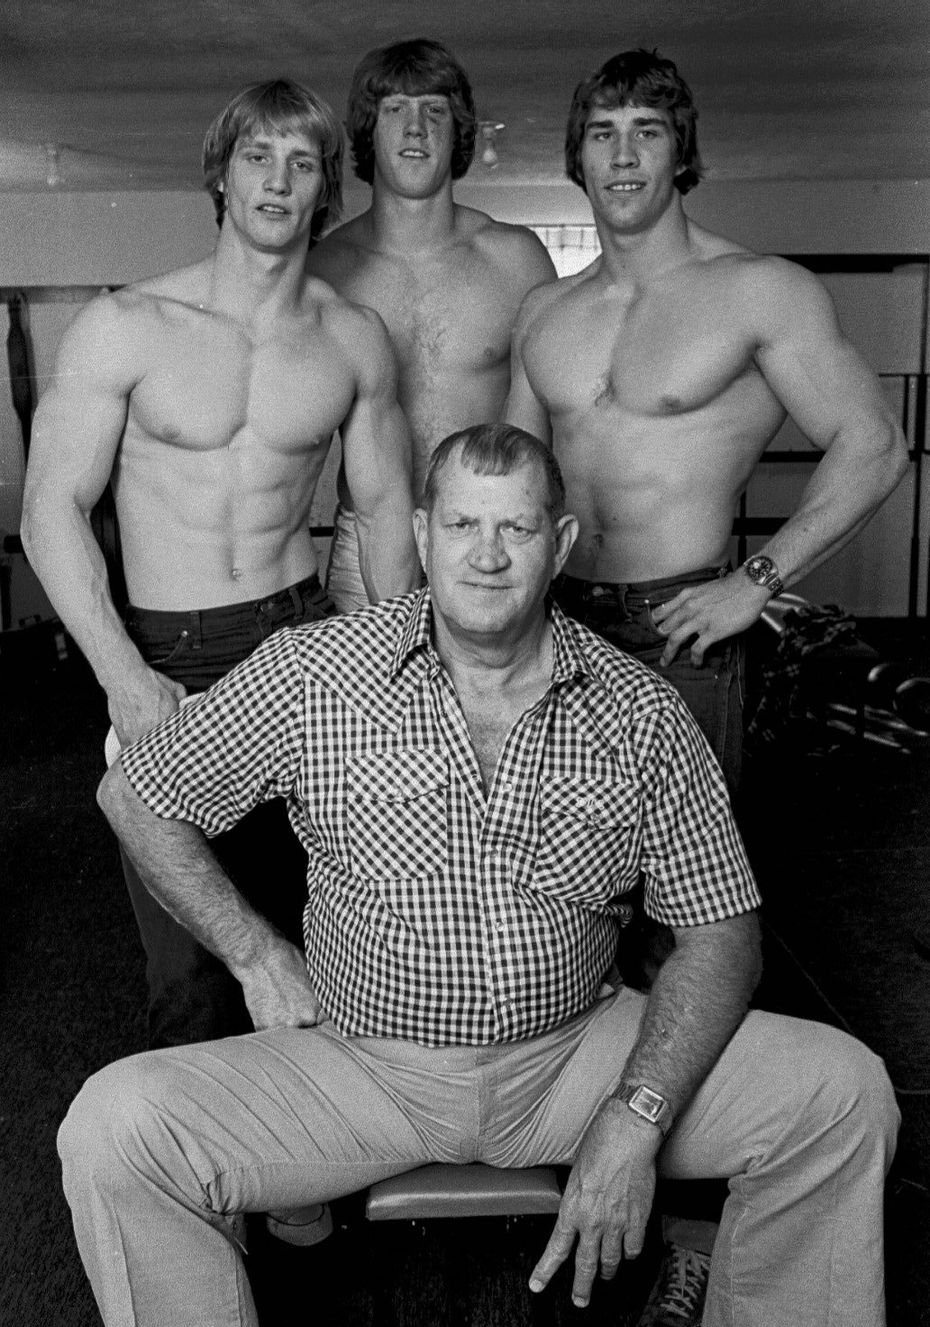 The Von Erich wrestling family in 1980: Jack Adkisson, foreground, who wrestled under the name of Fritz Von Erich, with his sons Kevin, left, David, center, and Kerry, right.  Kerry Adkisson was later found in rural Denton County, the victim of an apparent self-inflicted gunshot wound, one day after he was accused of cocaine possession.